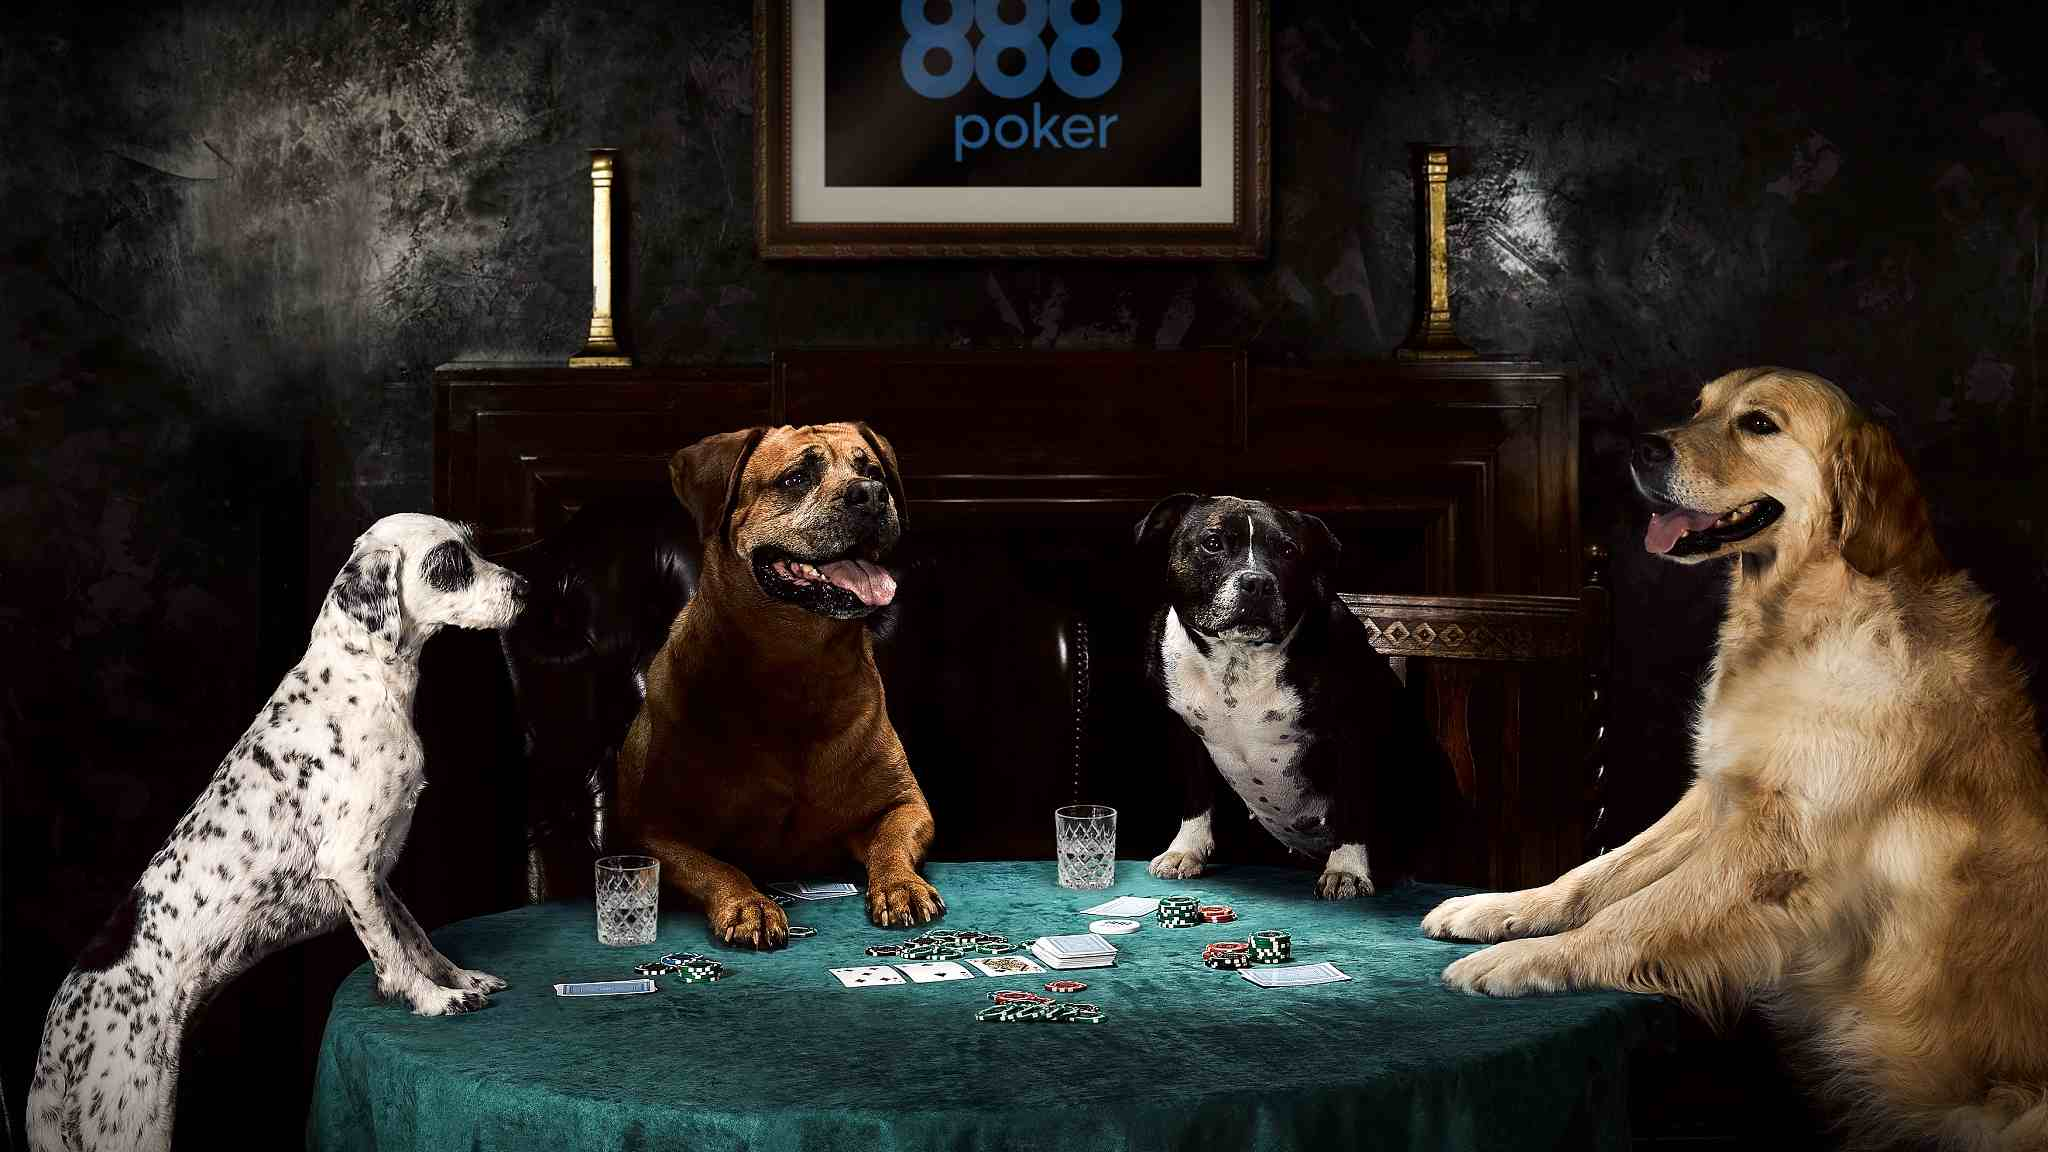 Online Poker Company Recreates Dogs Playing Poker Painting Cgtn